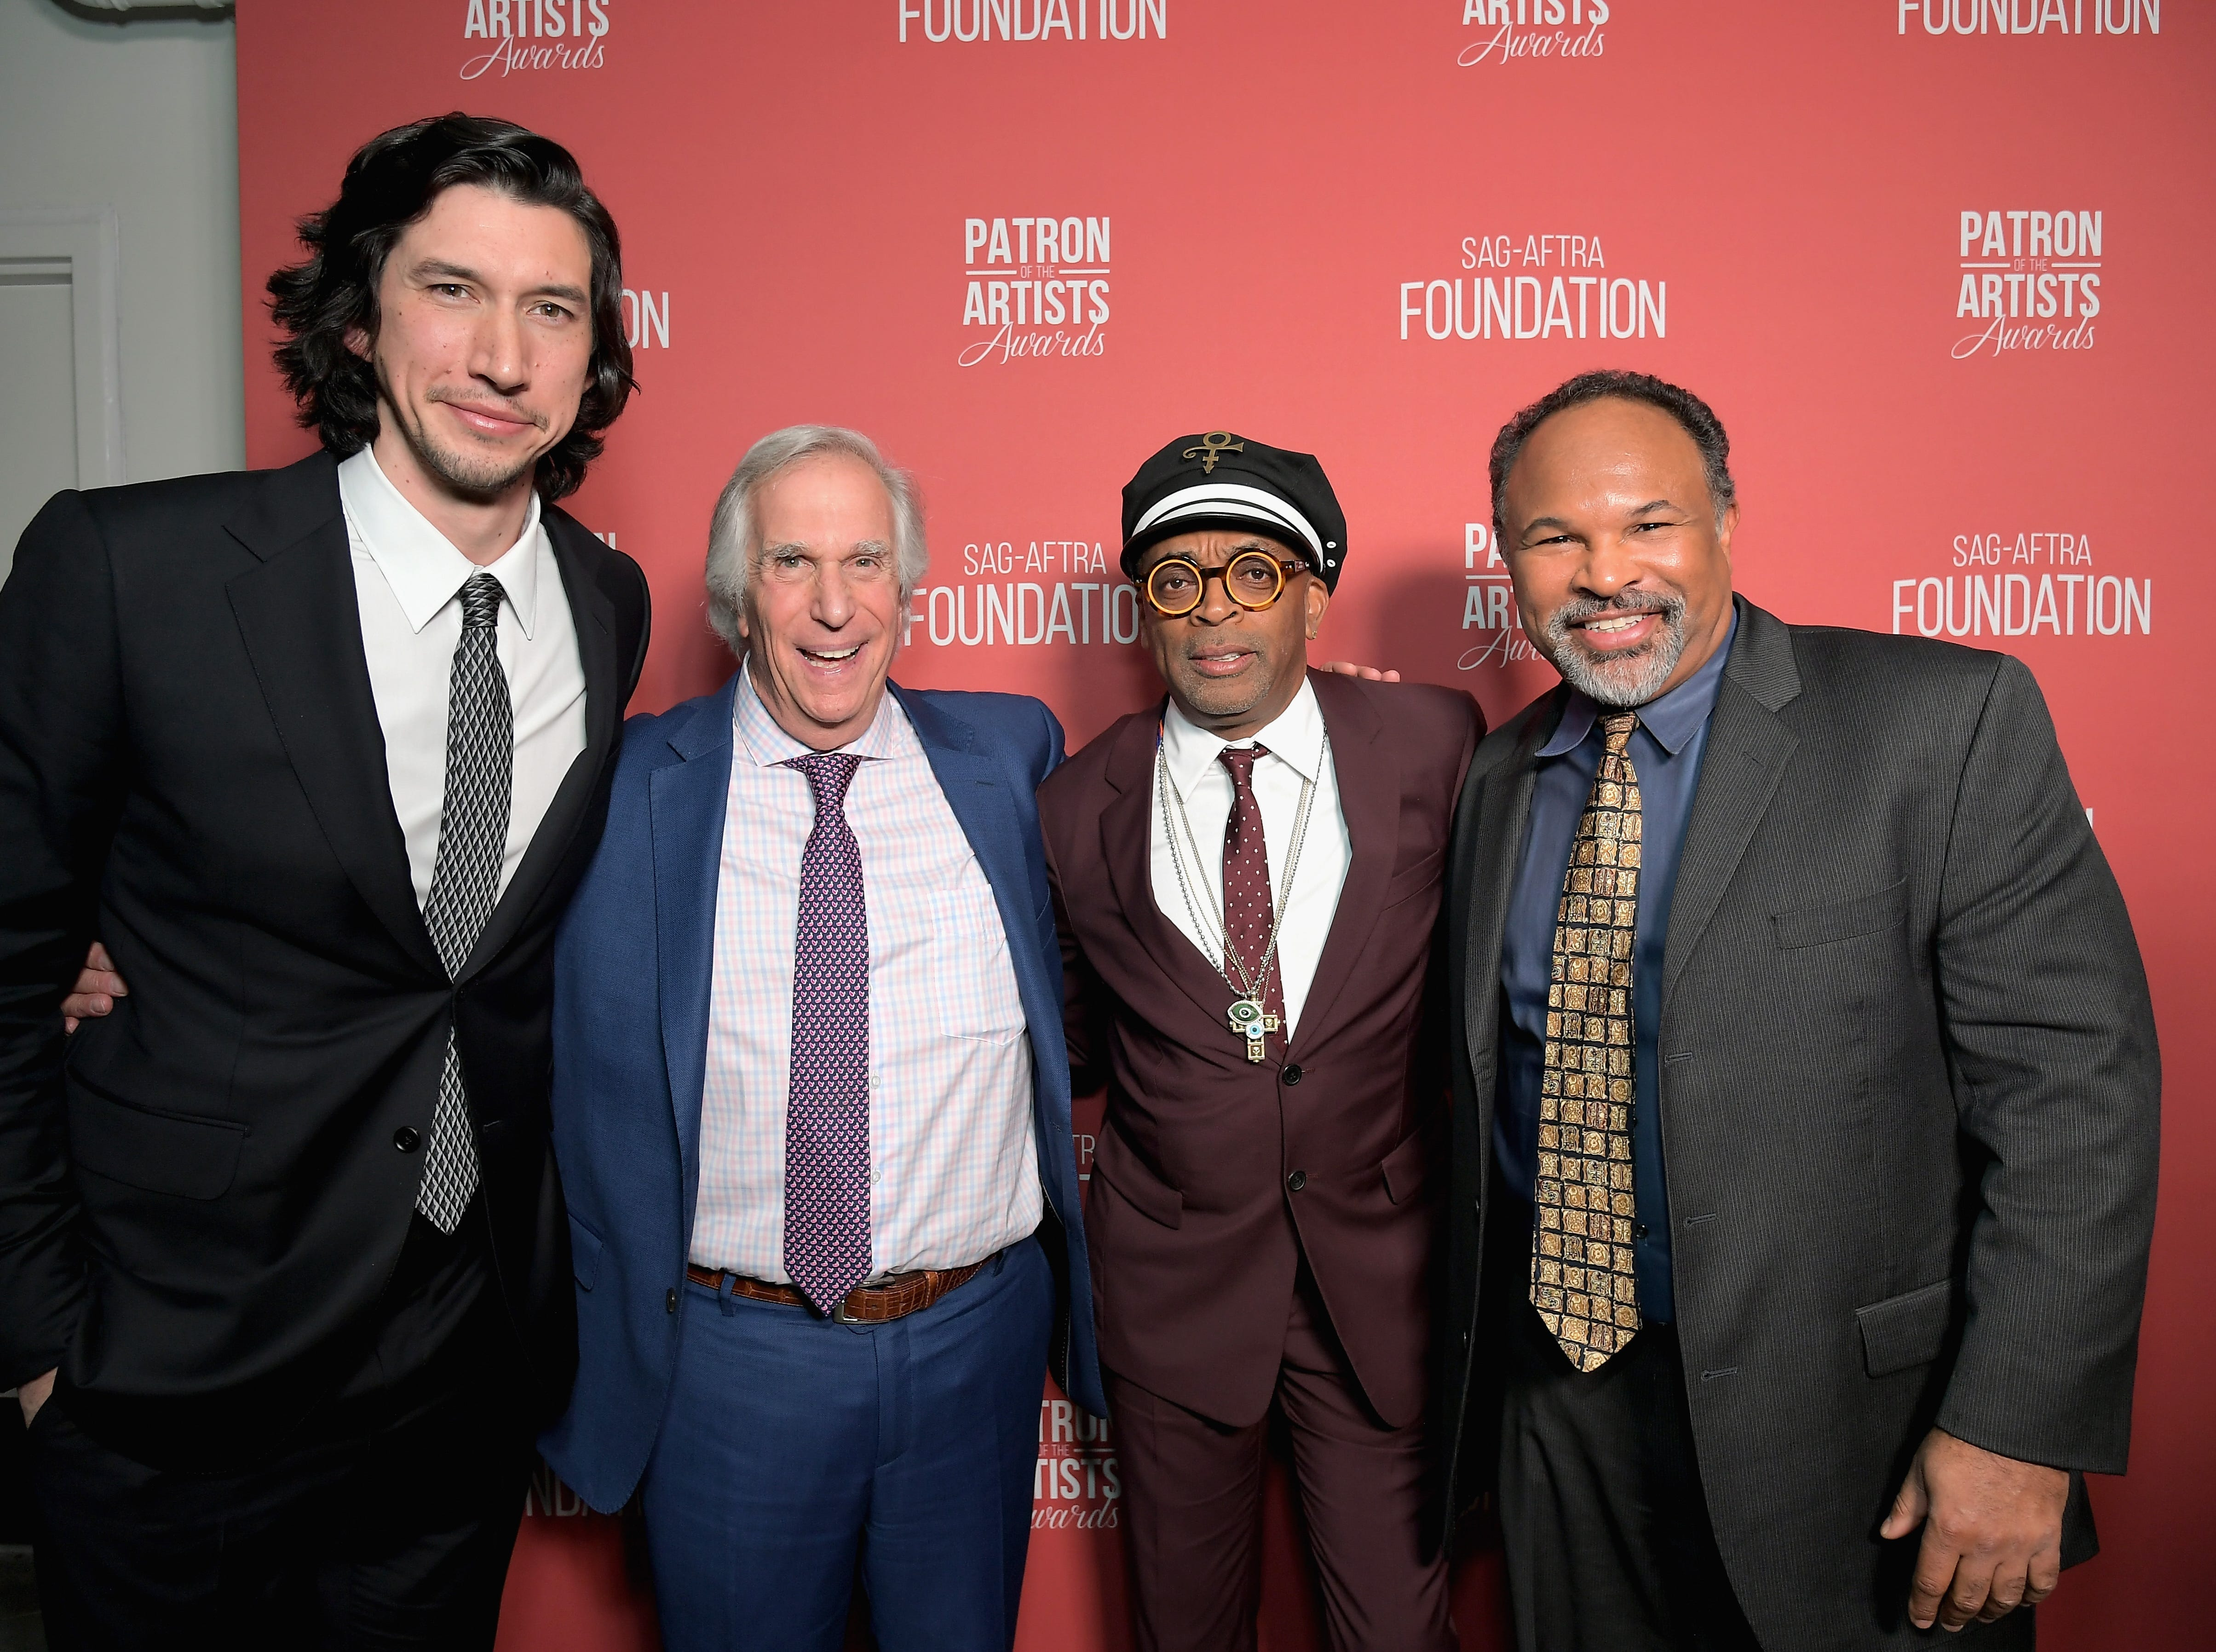 BEVERLY HILLS, CA - NOVEMBER 08:  (L-R) Adam Driver, Henry Winkler, Patron of the Artists Award recipient Spike Lee, and Geoffrey Owens attend the SAG-AFTRA Foundation's 3rd Annual Patron of the Artists Awards at the Wallis Annenberg Center for the Performing Arts on November 8, 2018 in Beverly Hills, California.  (Photo by Charley Gallay/Getty Images for SAG-AFTRA Foundation) ORG XMIT: 775247555 ORIG FILE ID: 1059475082